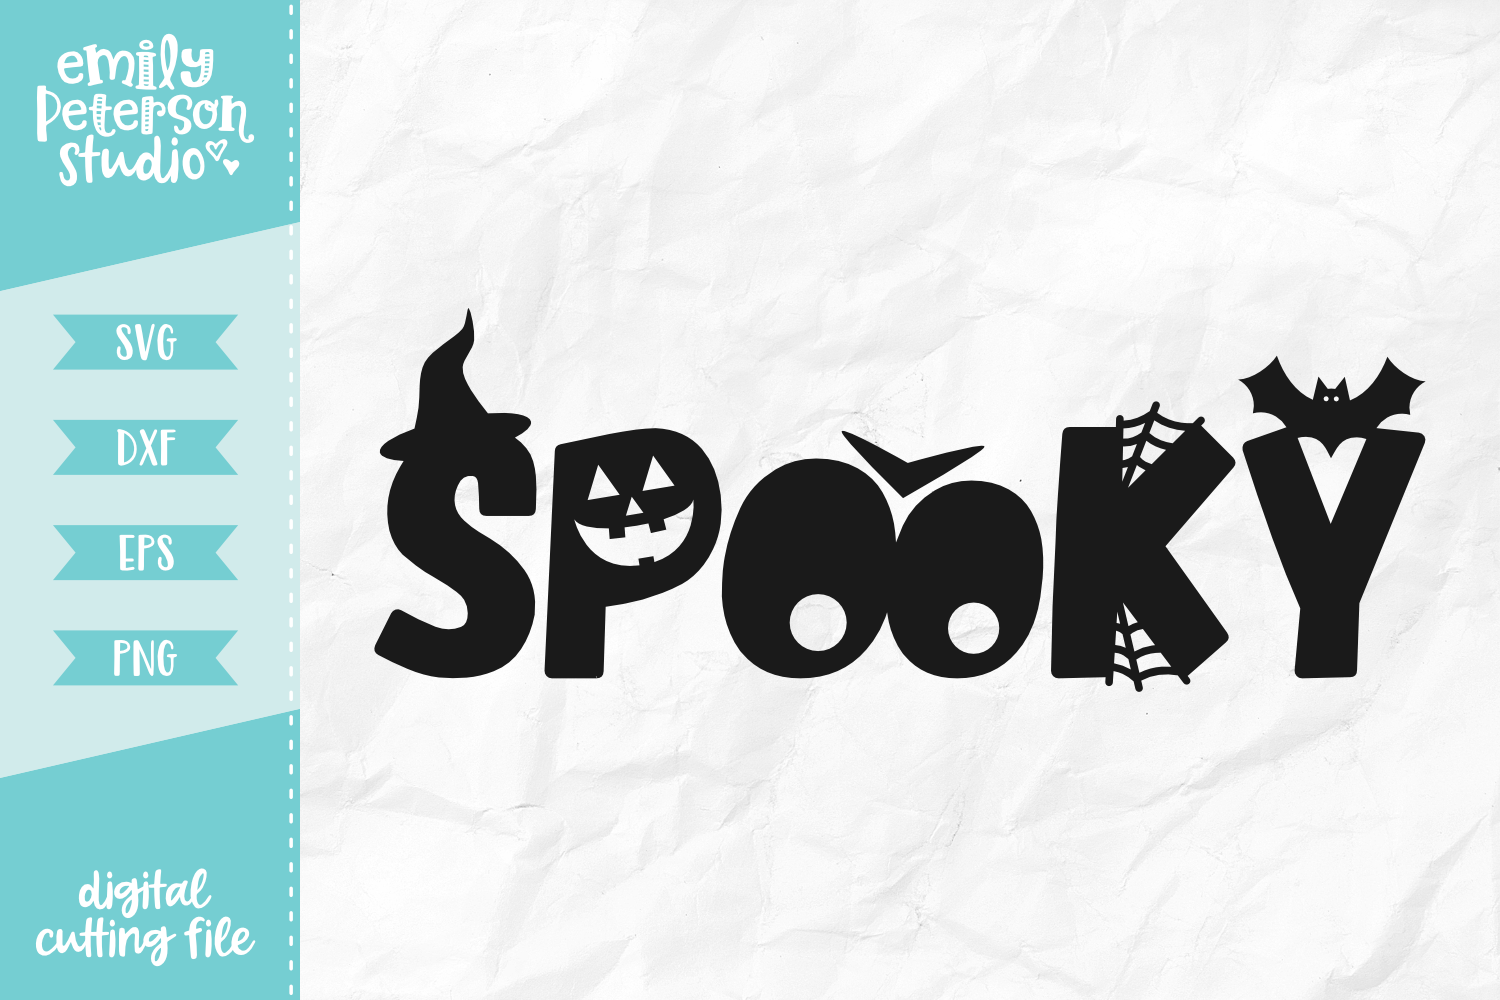 Spooky SVG DXF EPS PNG example image 1